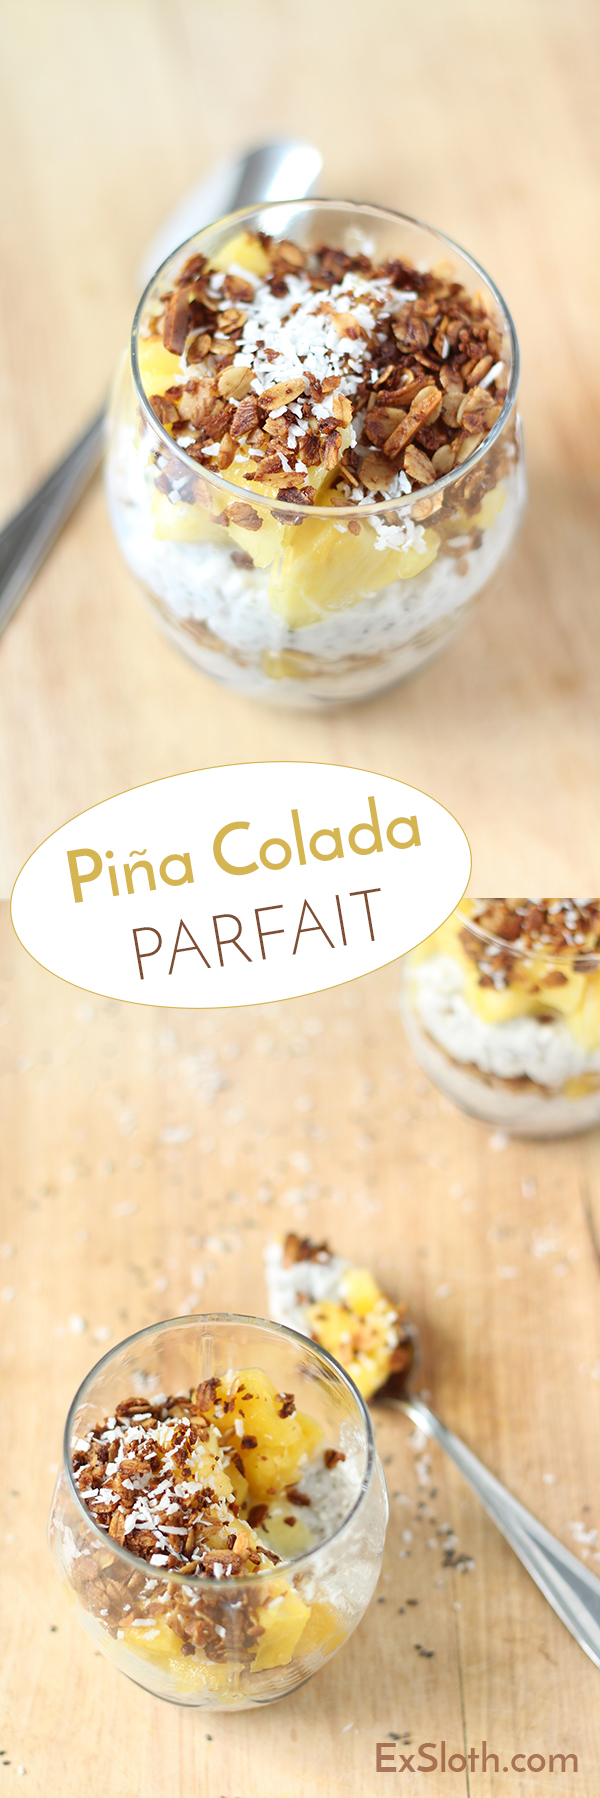 Vegan, Gluten Free Pina Colada Parfait with chia seed coconut milk 'yogurt' via @ExSloth | ExSloth.com